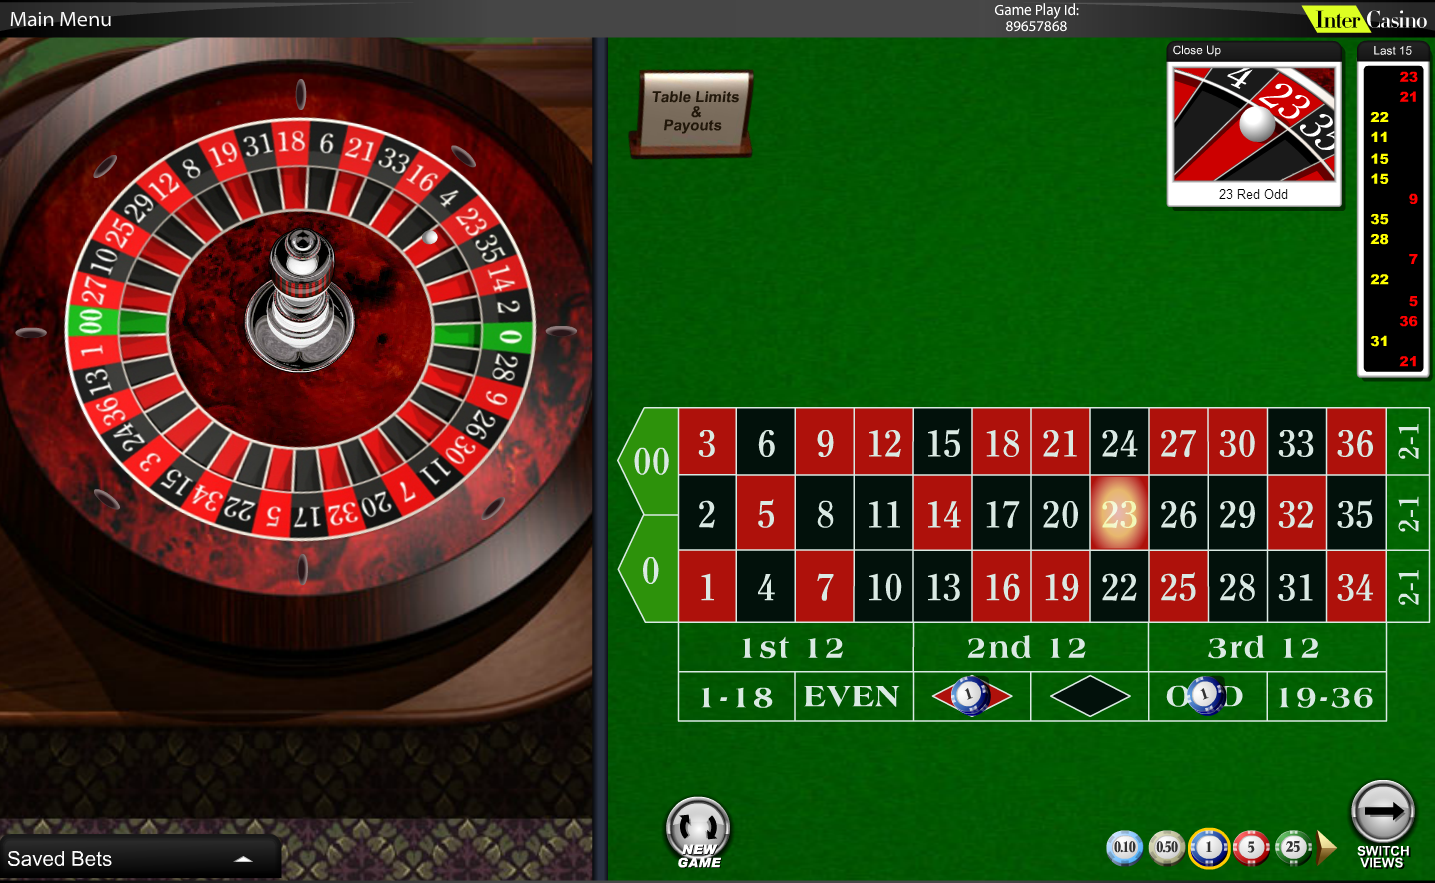 Roulette double zero wheel layout